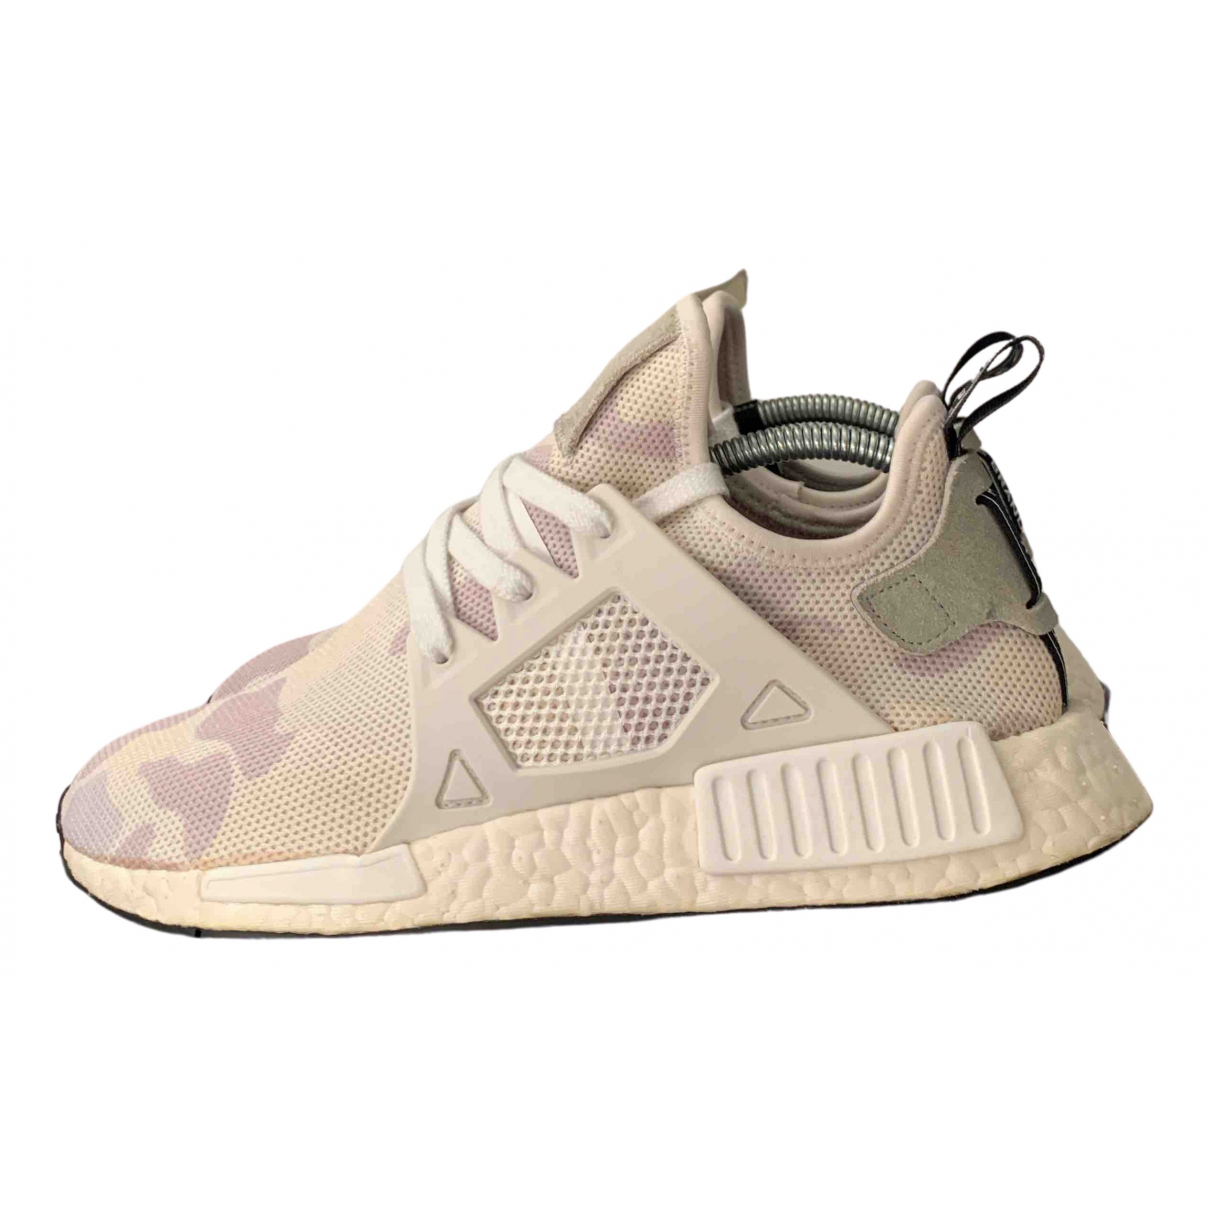 Adidas Nmd White Trainers for Women 40 EU